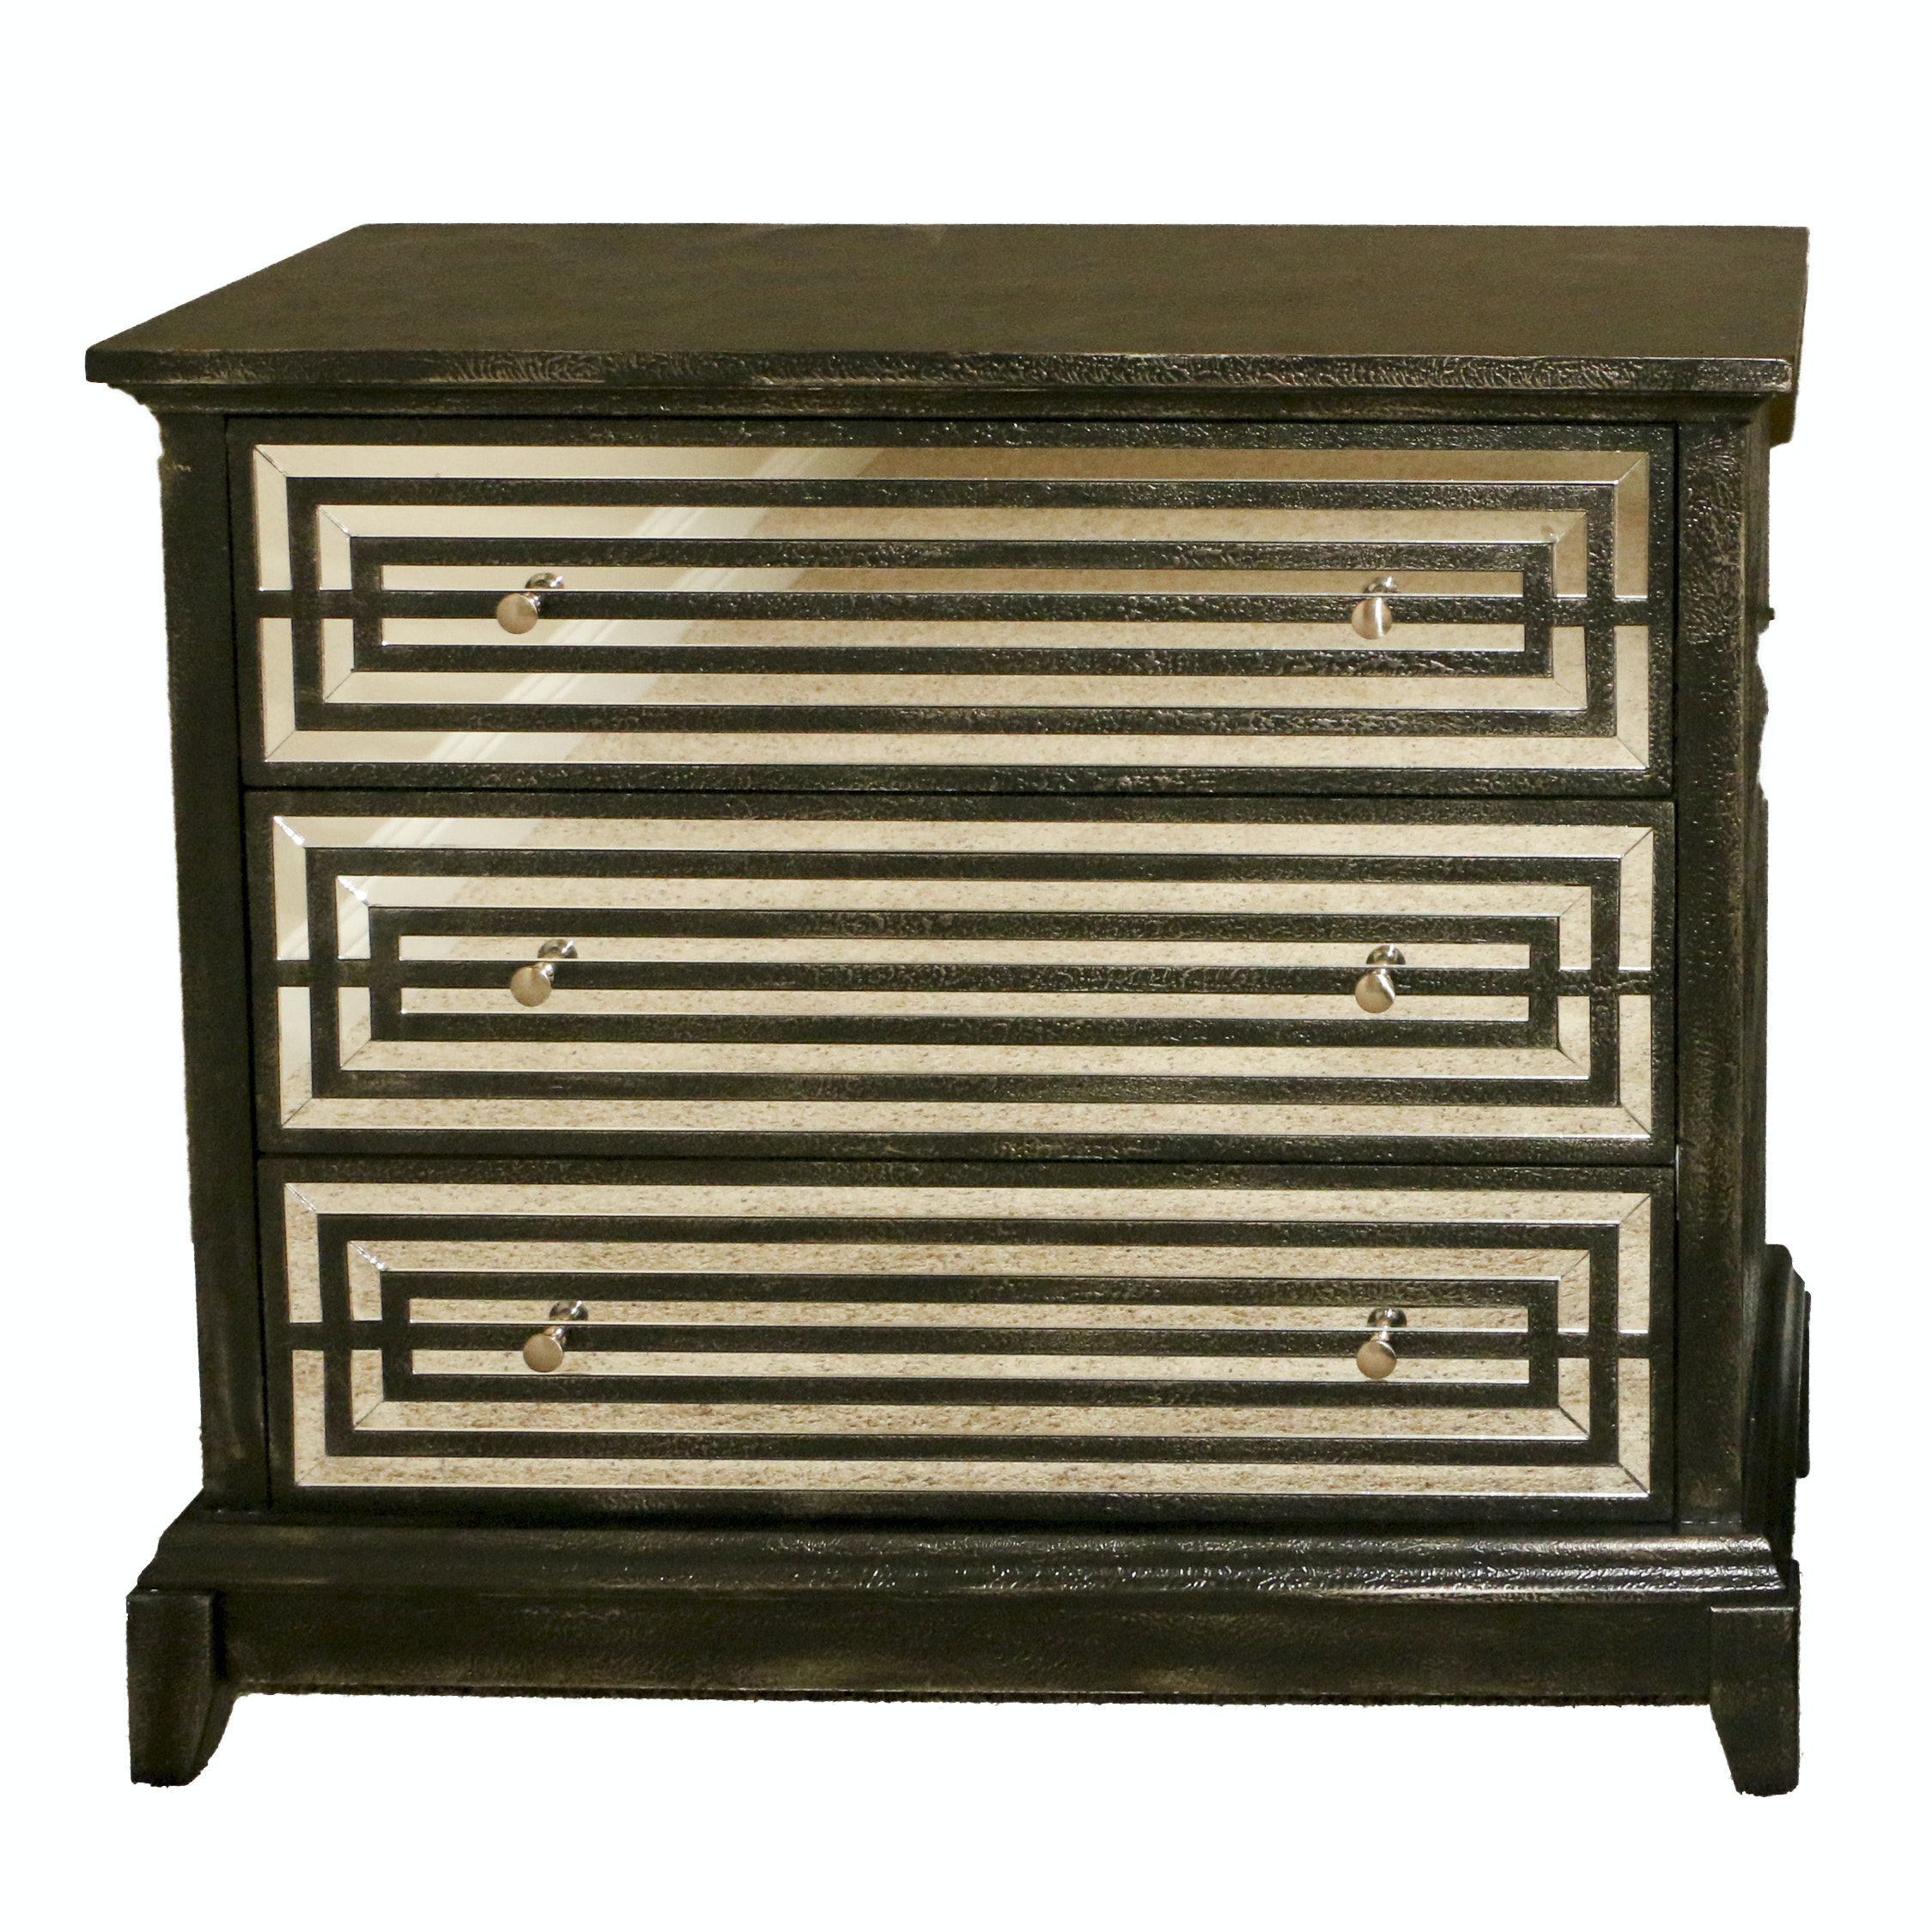 Black Wooden Nightstand with Mirrored Drawer Fronts, 21st Century